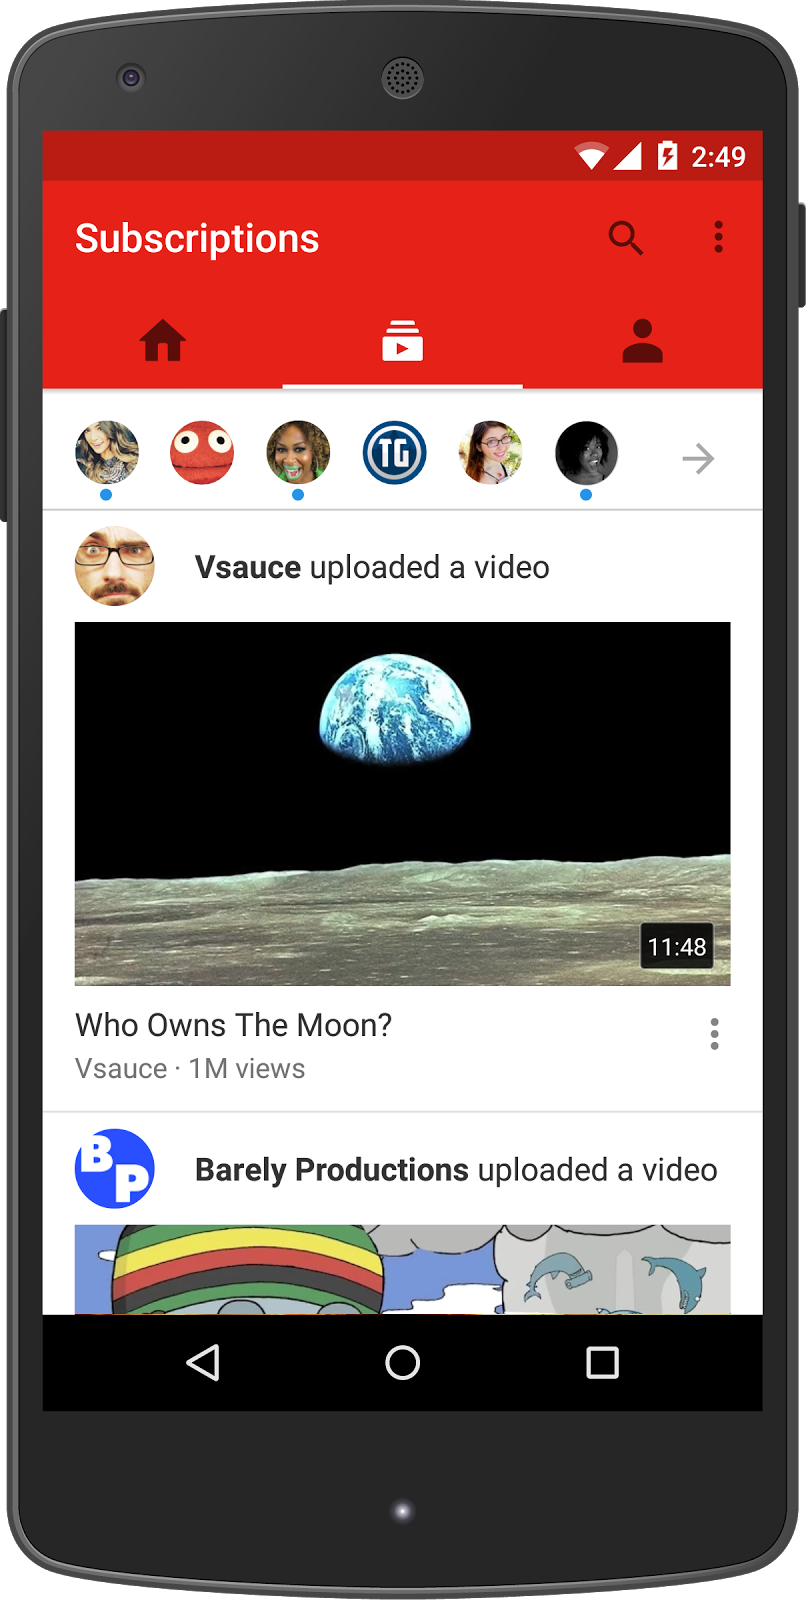 The Youtube Application On Android Supports Playback Of: Here Are 5 New Features Coming Soon To Google's YouTube